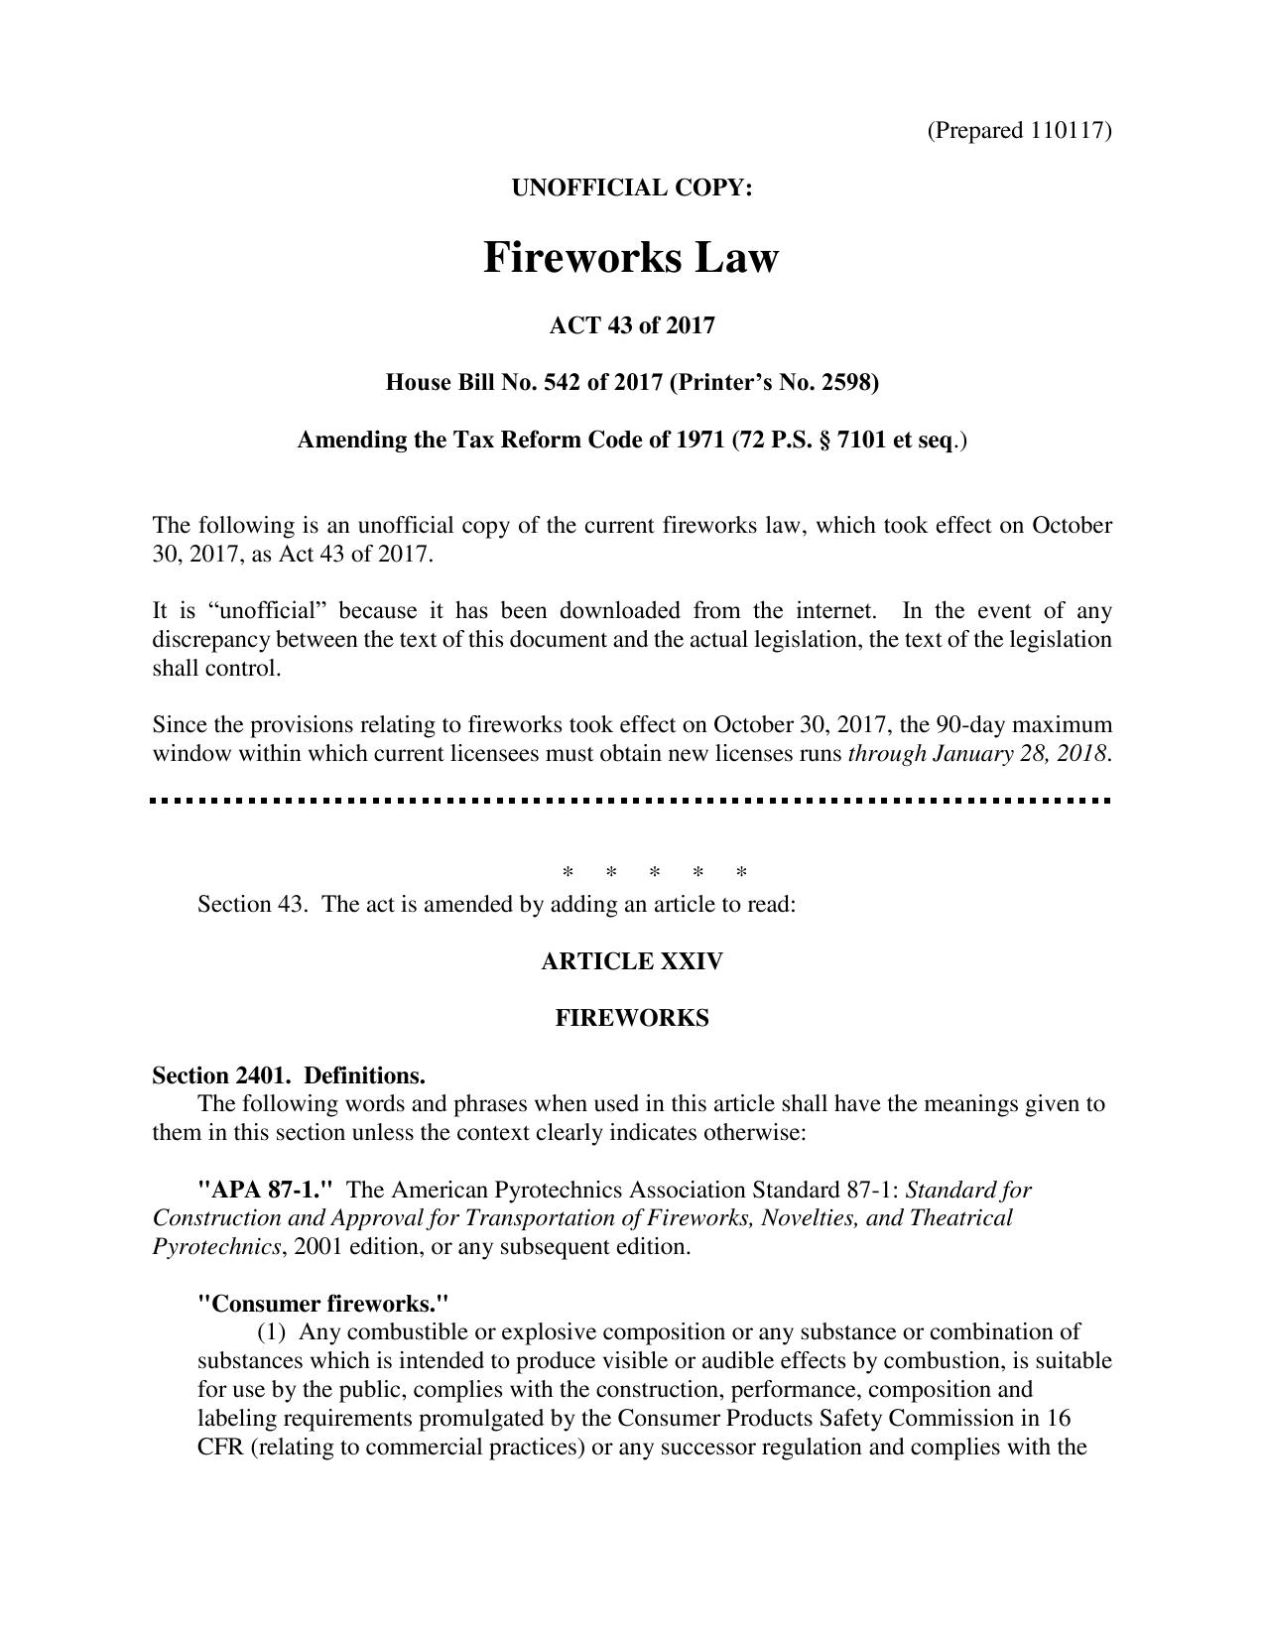 Read the new fireworks law